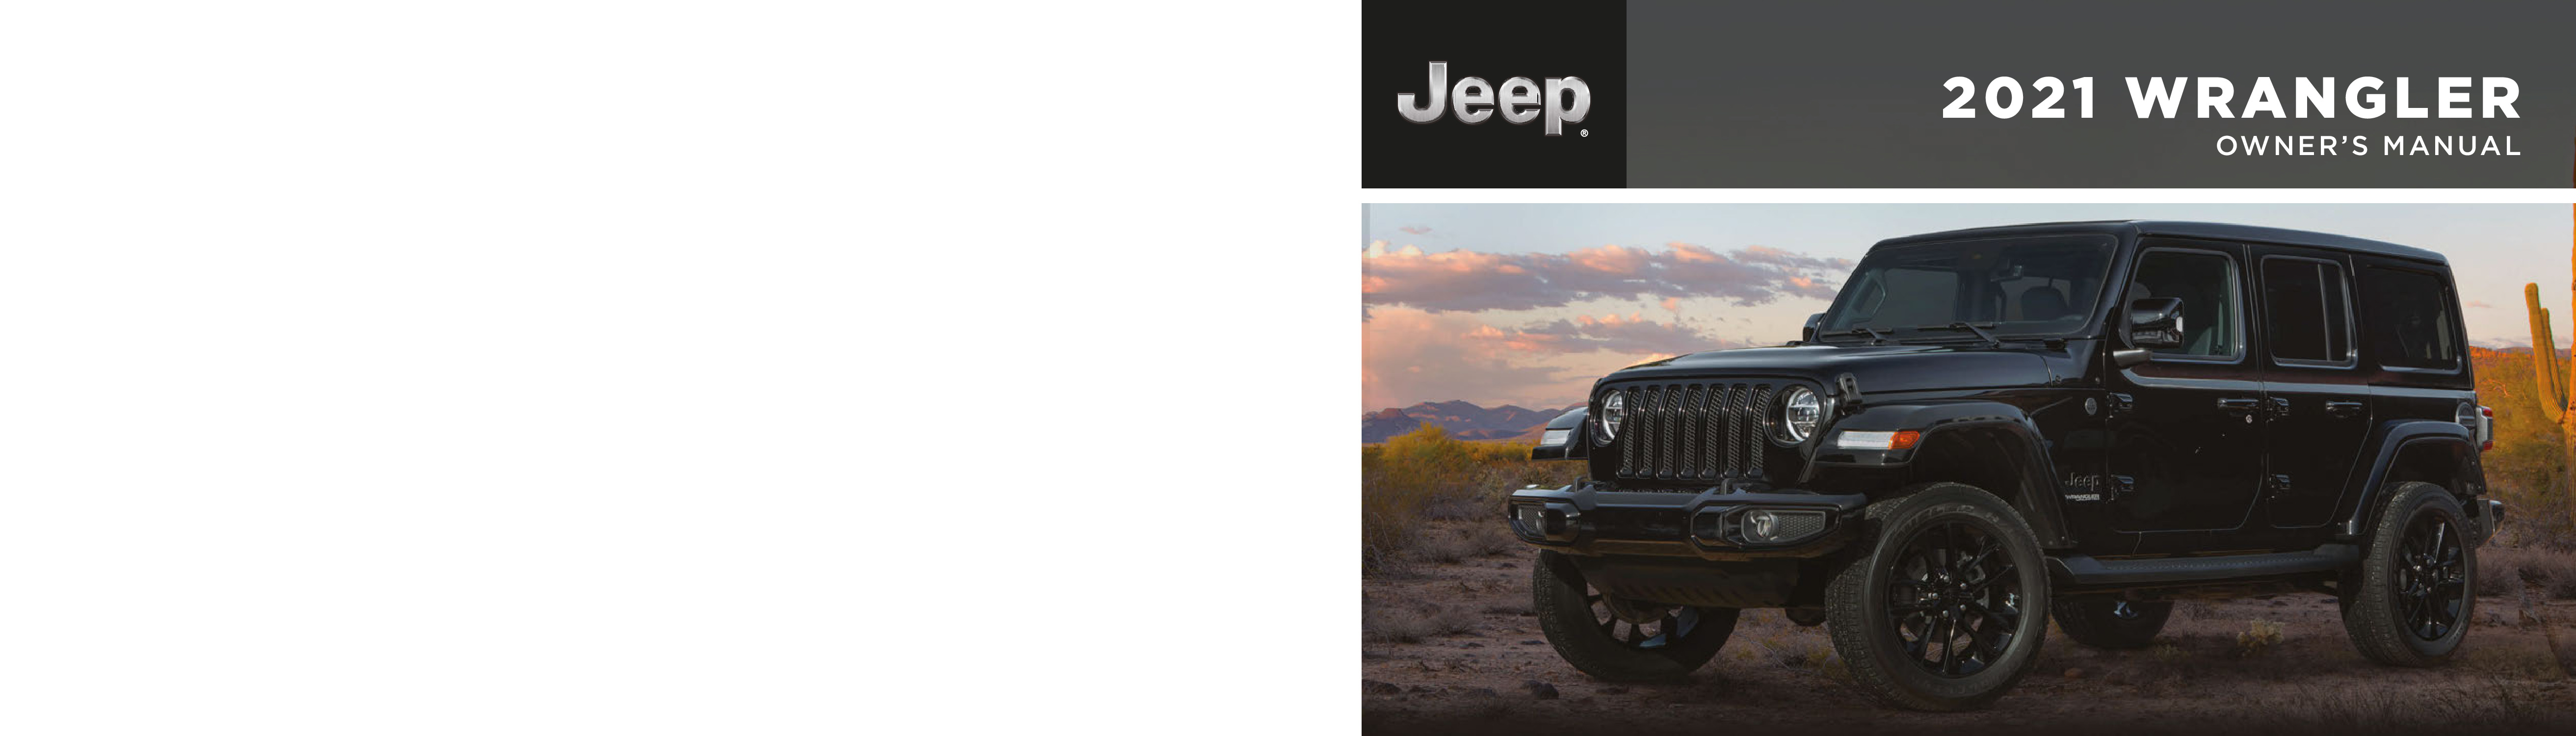 2021 Jeep Wrangler owners manual